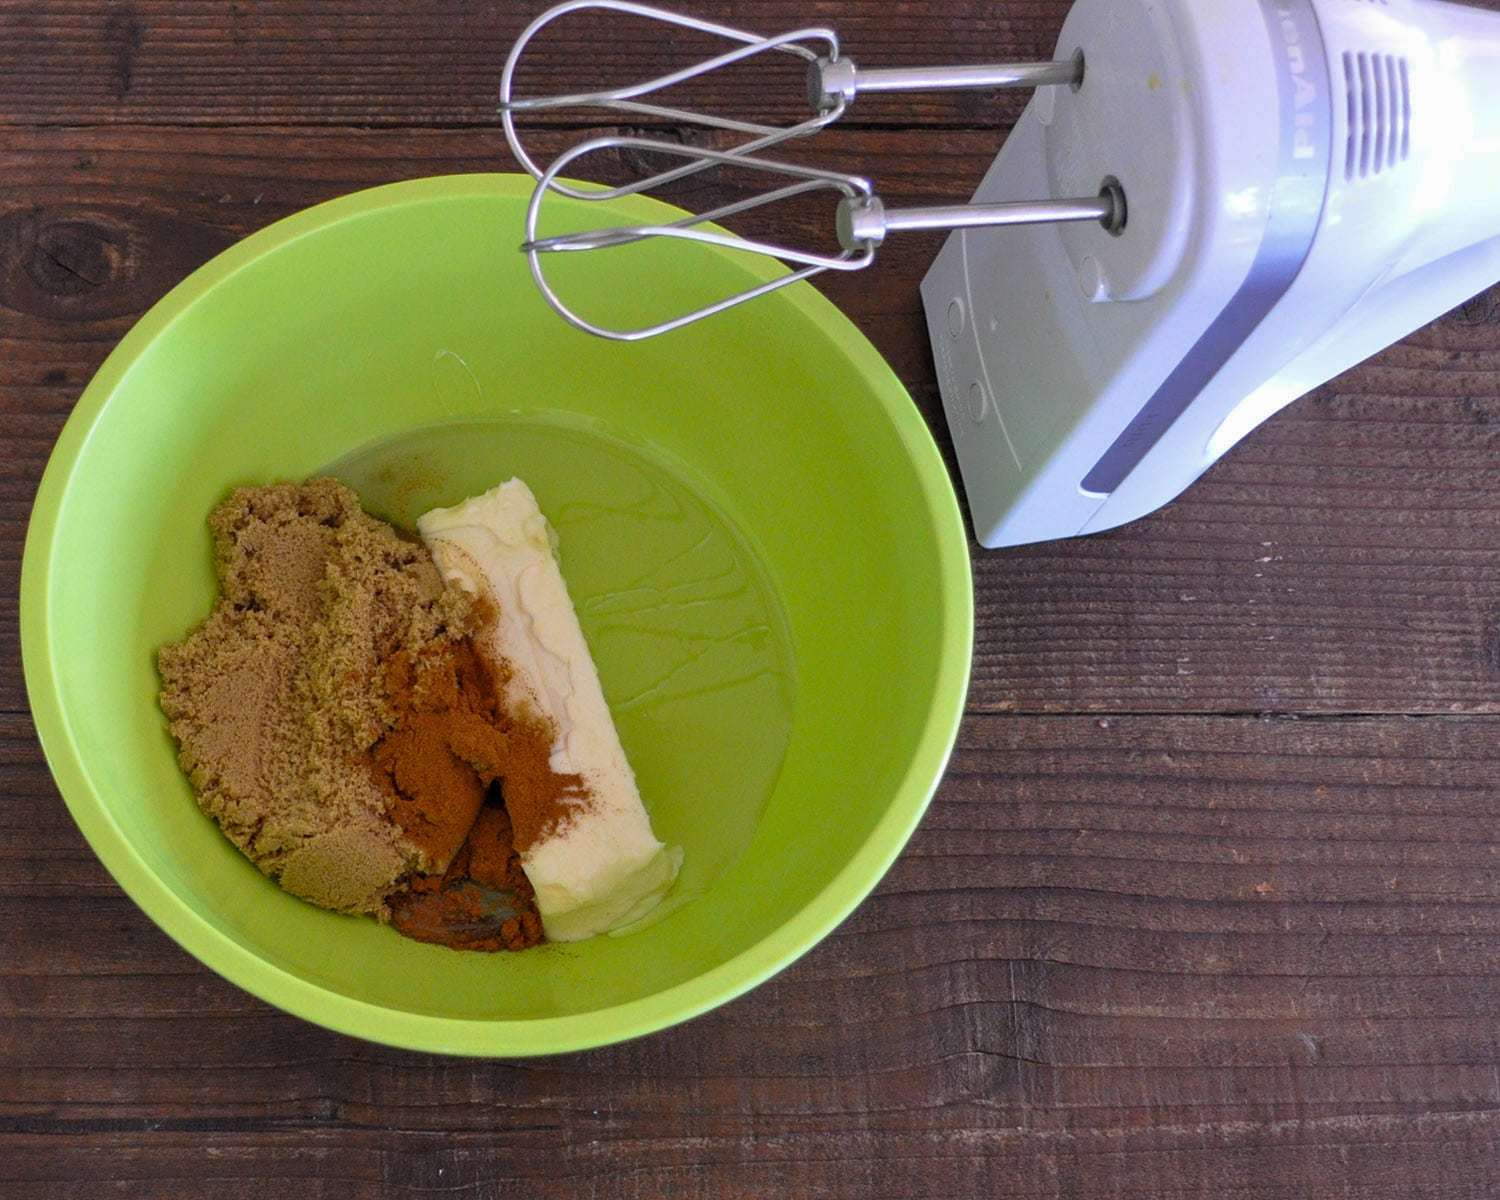 butter, brown sugar, karo syrup and cinnamon in a green mixing bowl